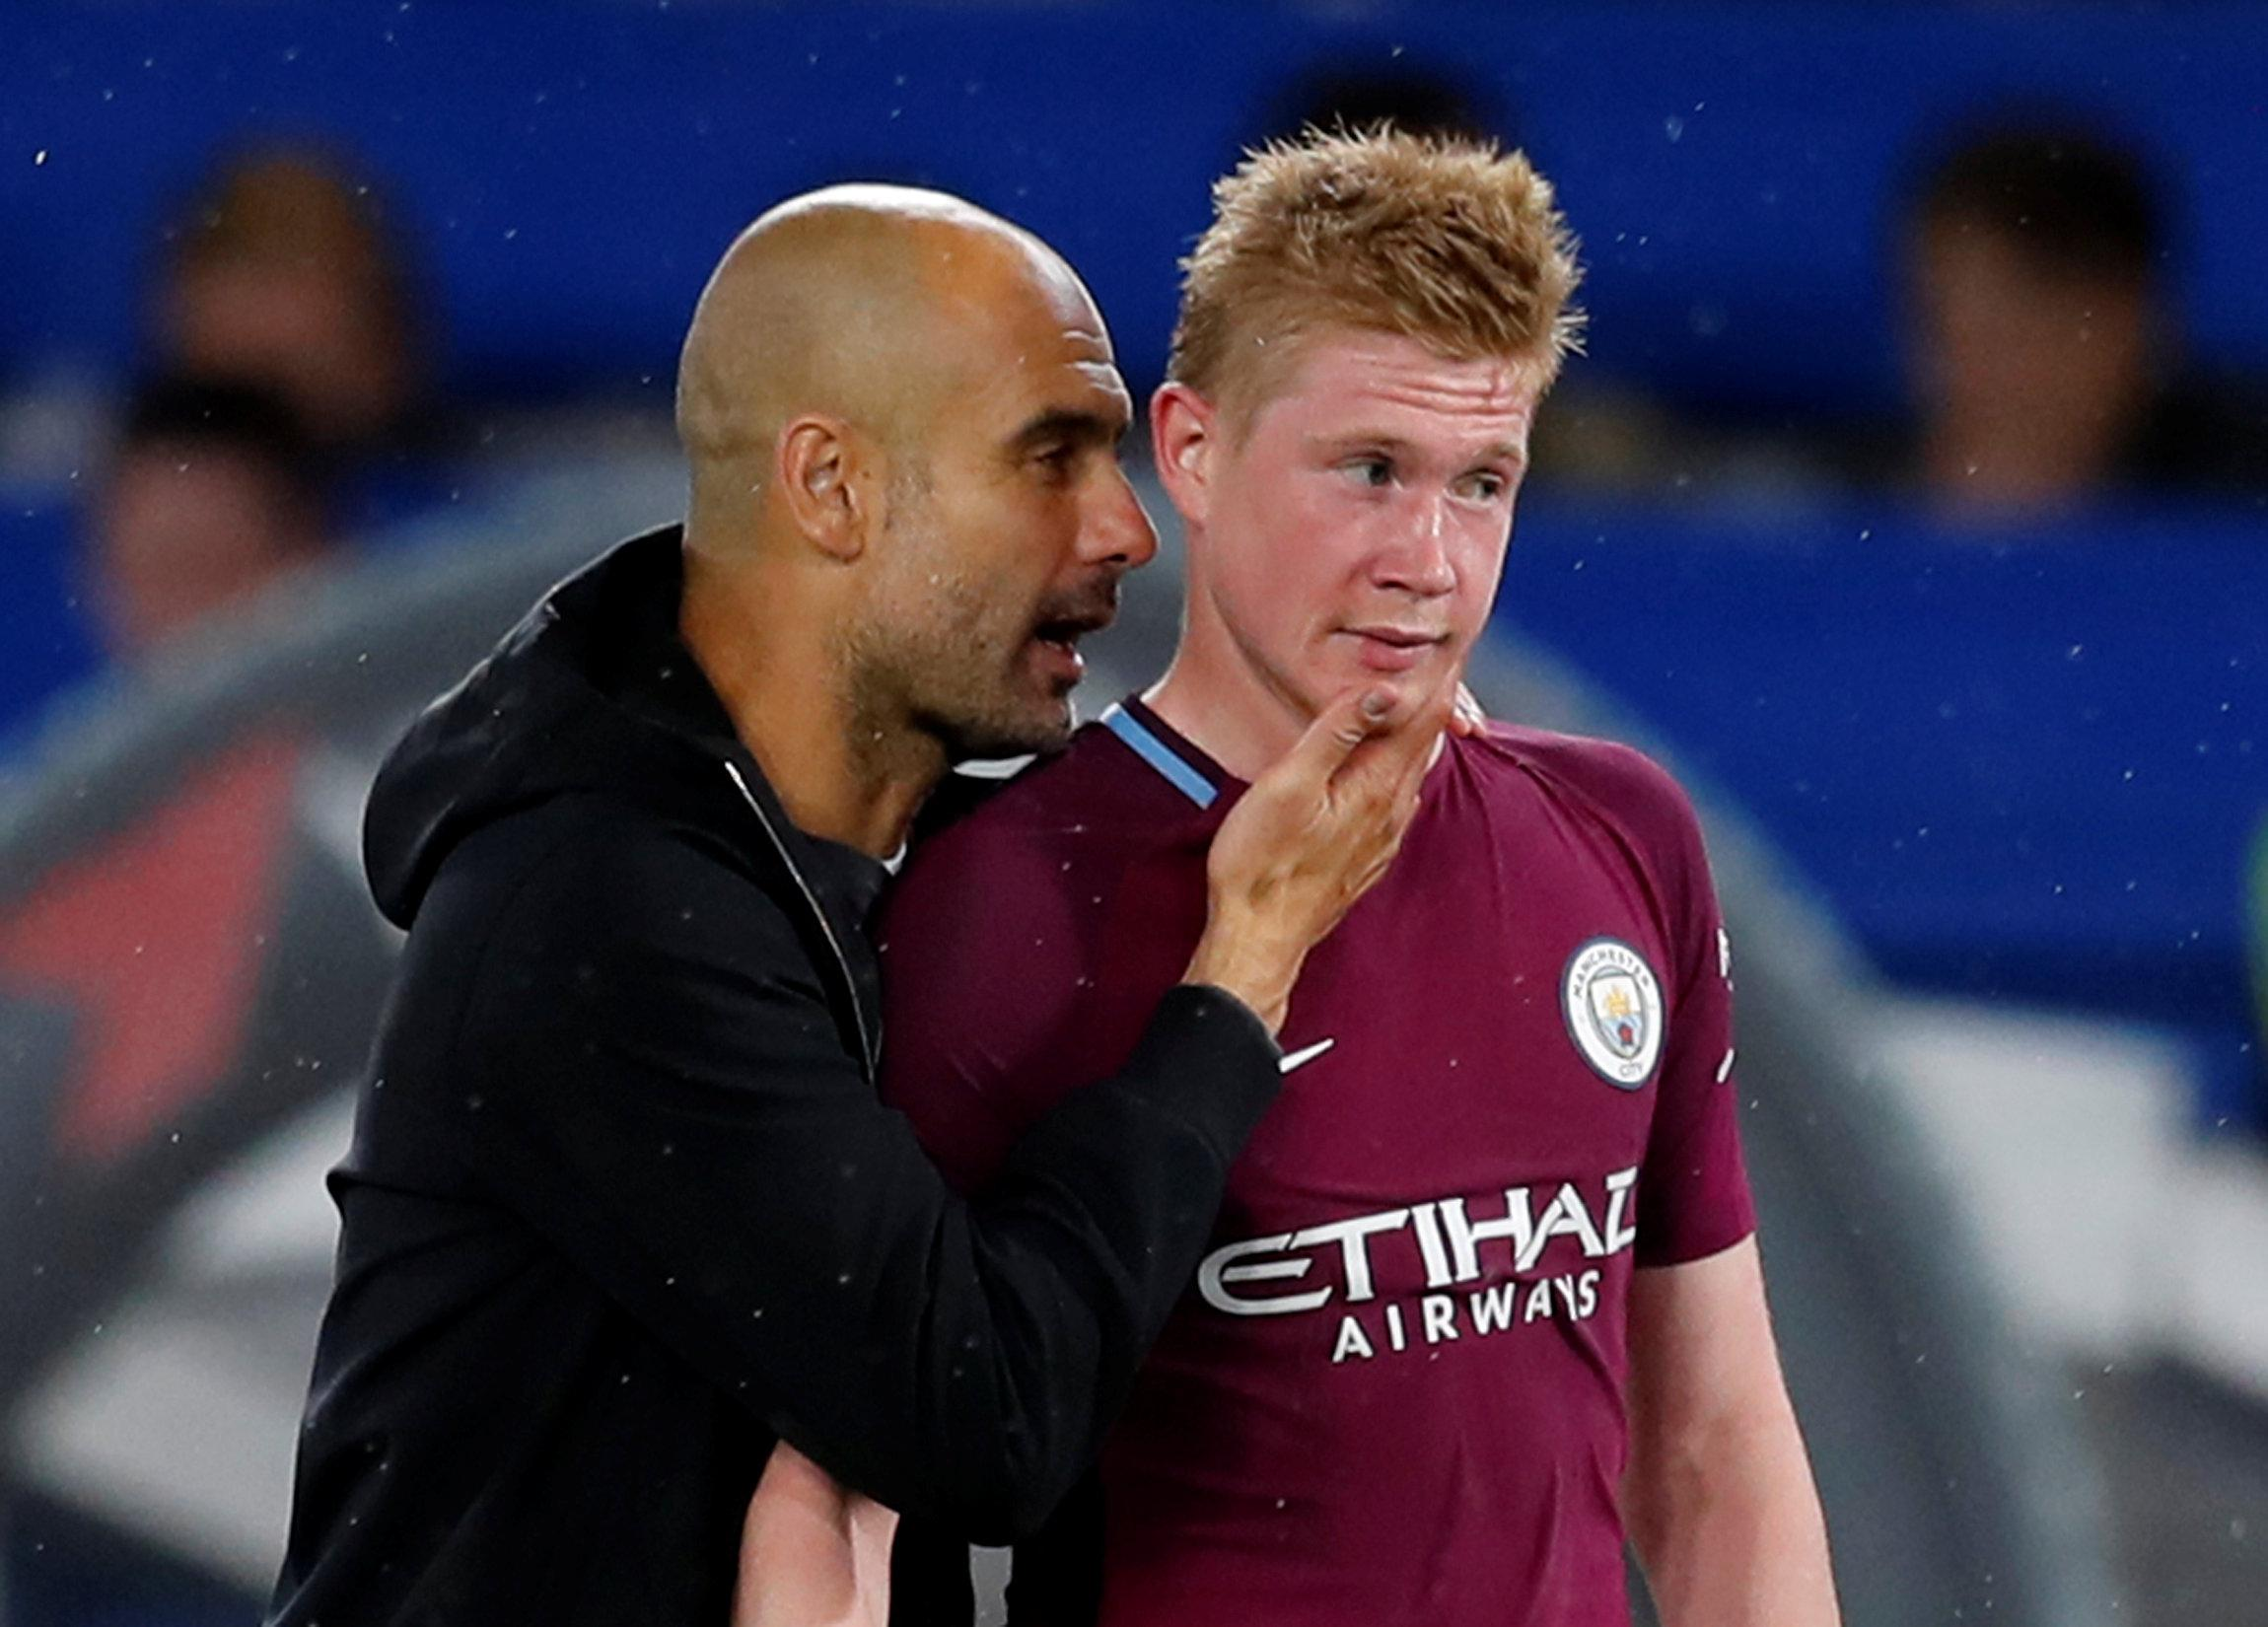 De Bruyne is the perfect general to execute Guardiola's battle plan